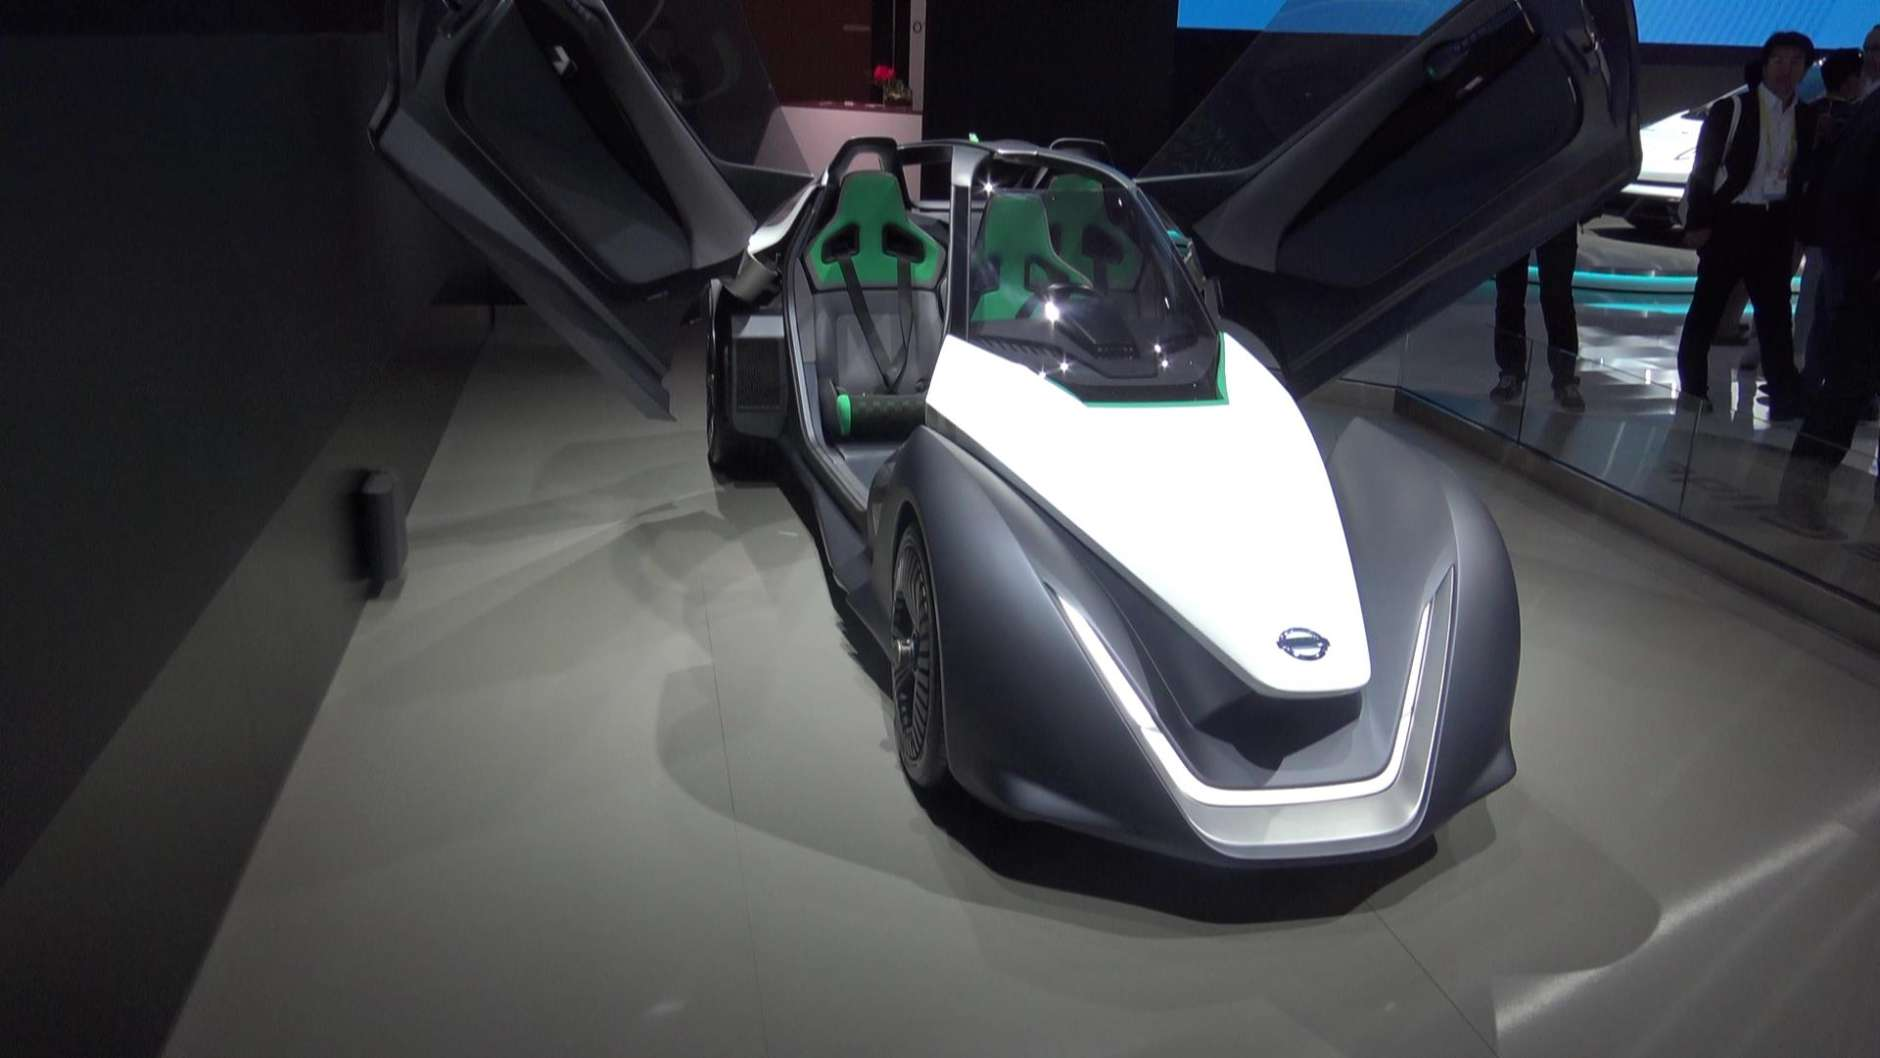 """This week at CES, as nearly a dozen manufacturers showcased distinct innovations within their own product lines, two fundamental trends seemed to emerge – the concept of vehicles capable of learning from drivers' emotions to affect behavioral change and the creation of an urban transportation model that can perhaps be best described as """"Autonomous Uber. (WTOP/Kenny Fried)"""